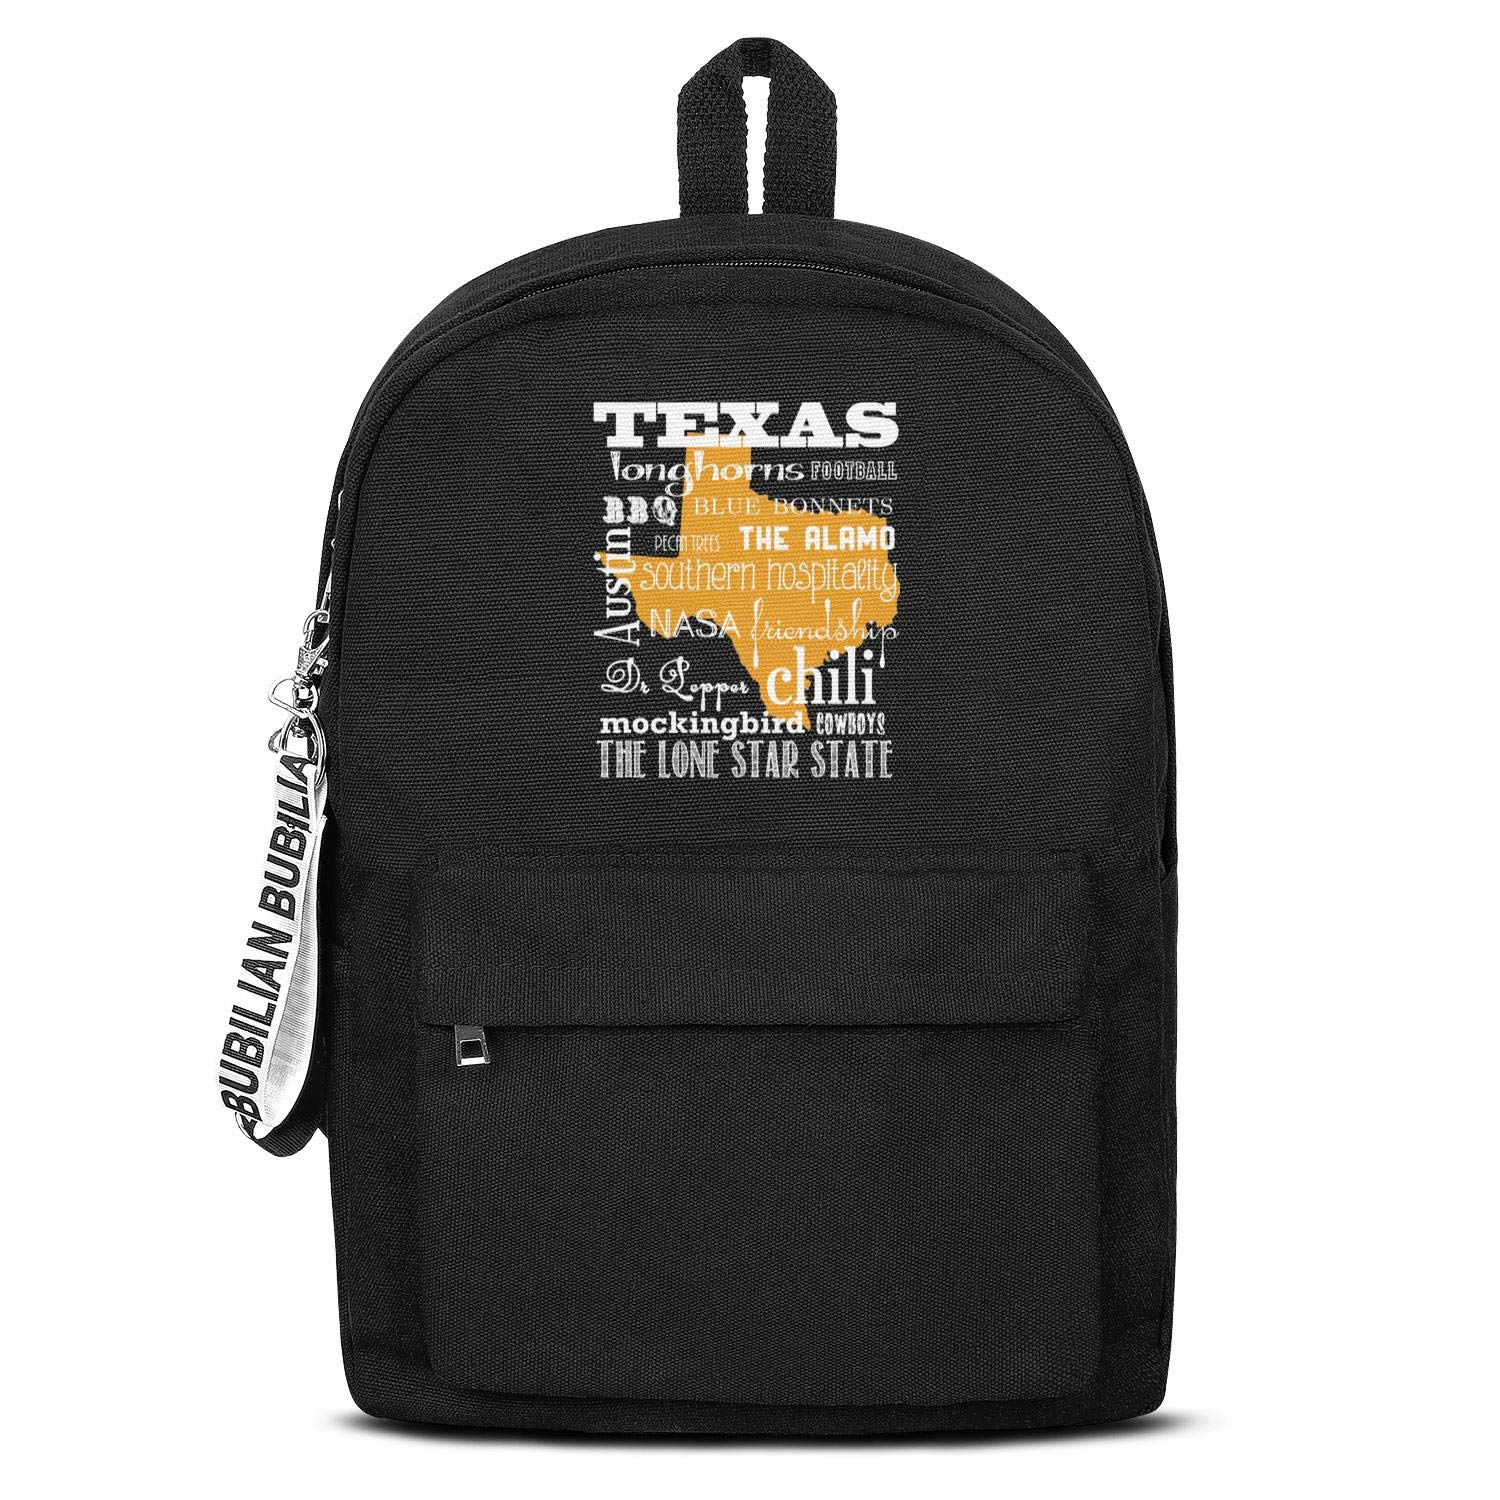 Laptop Bag HTLYT Students Novelty Quick-Dry Lightweight Canvas Crossbody Bag The-Classic-Lone-Star-State-Bottom-Text-White